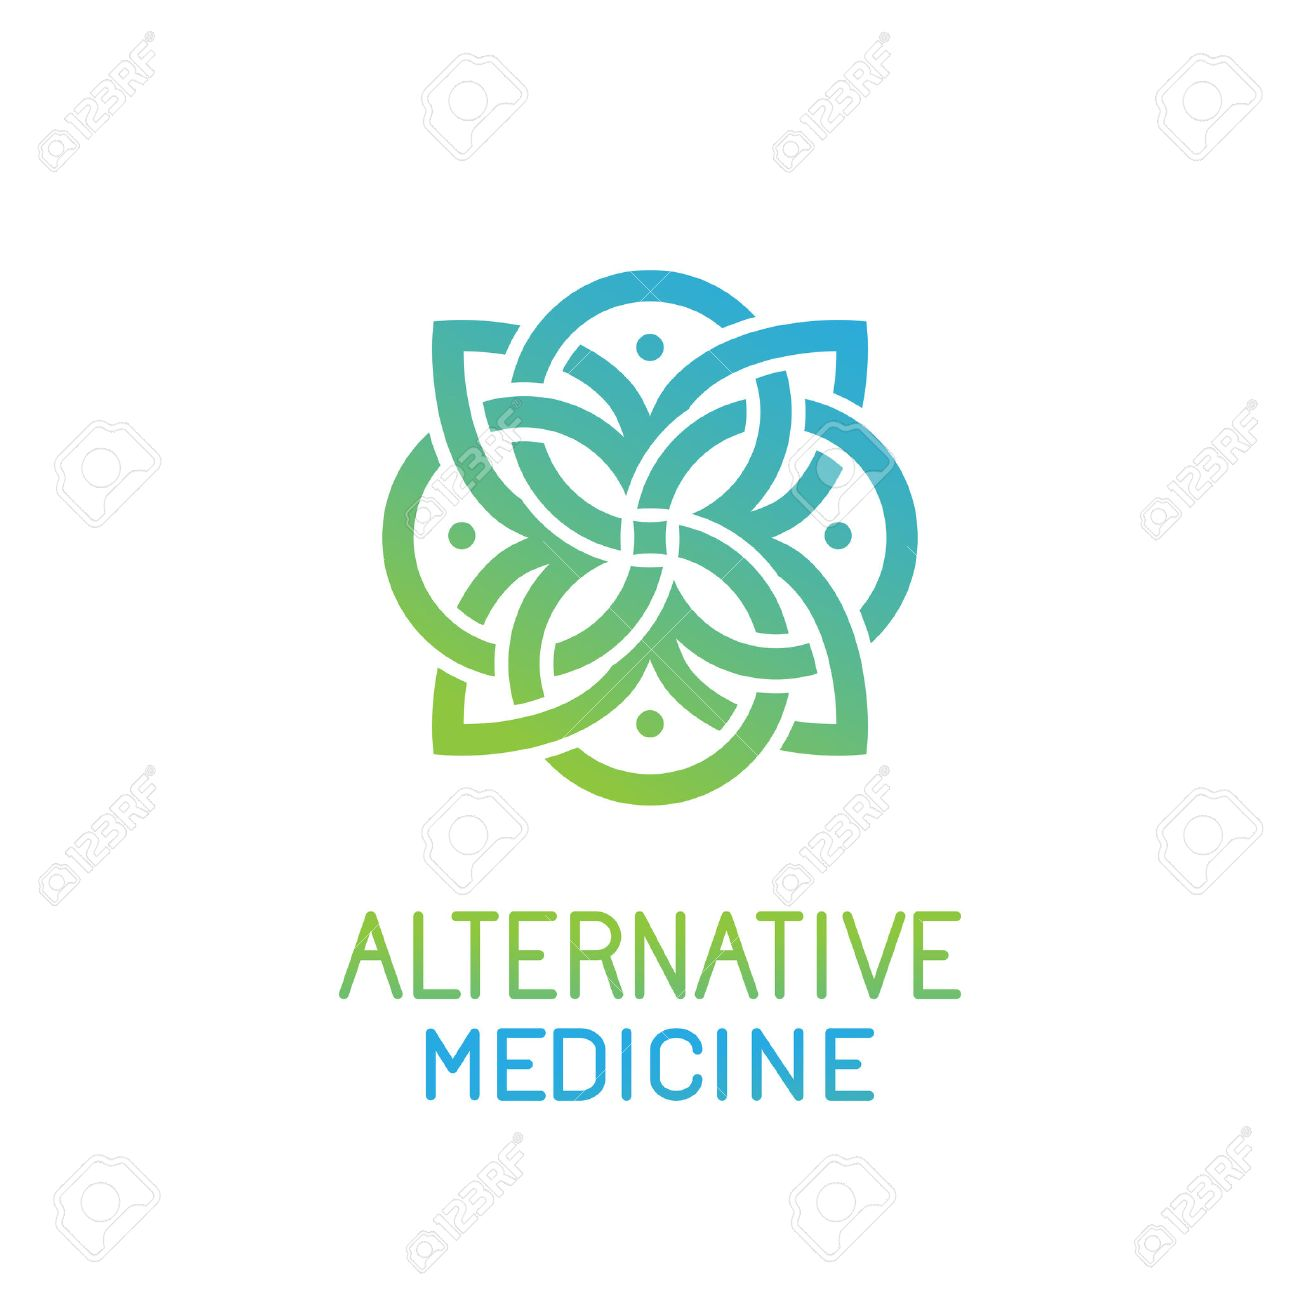 abstract design template for alternative medicine, health center and yoga studios - emblem made with leaves and lines - 51066170